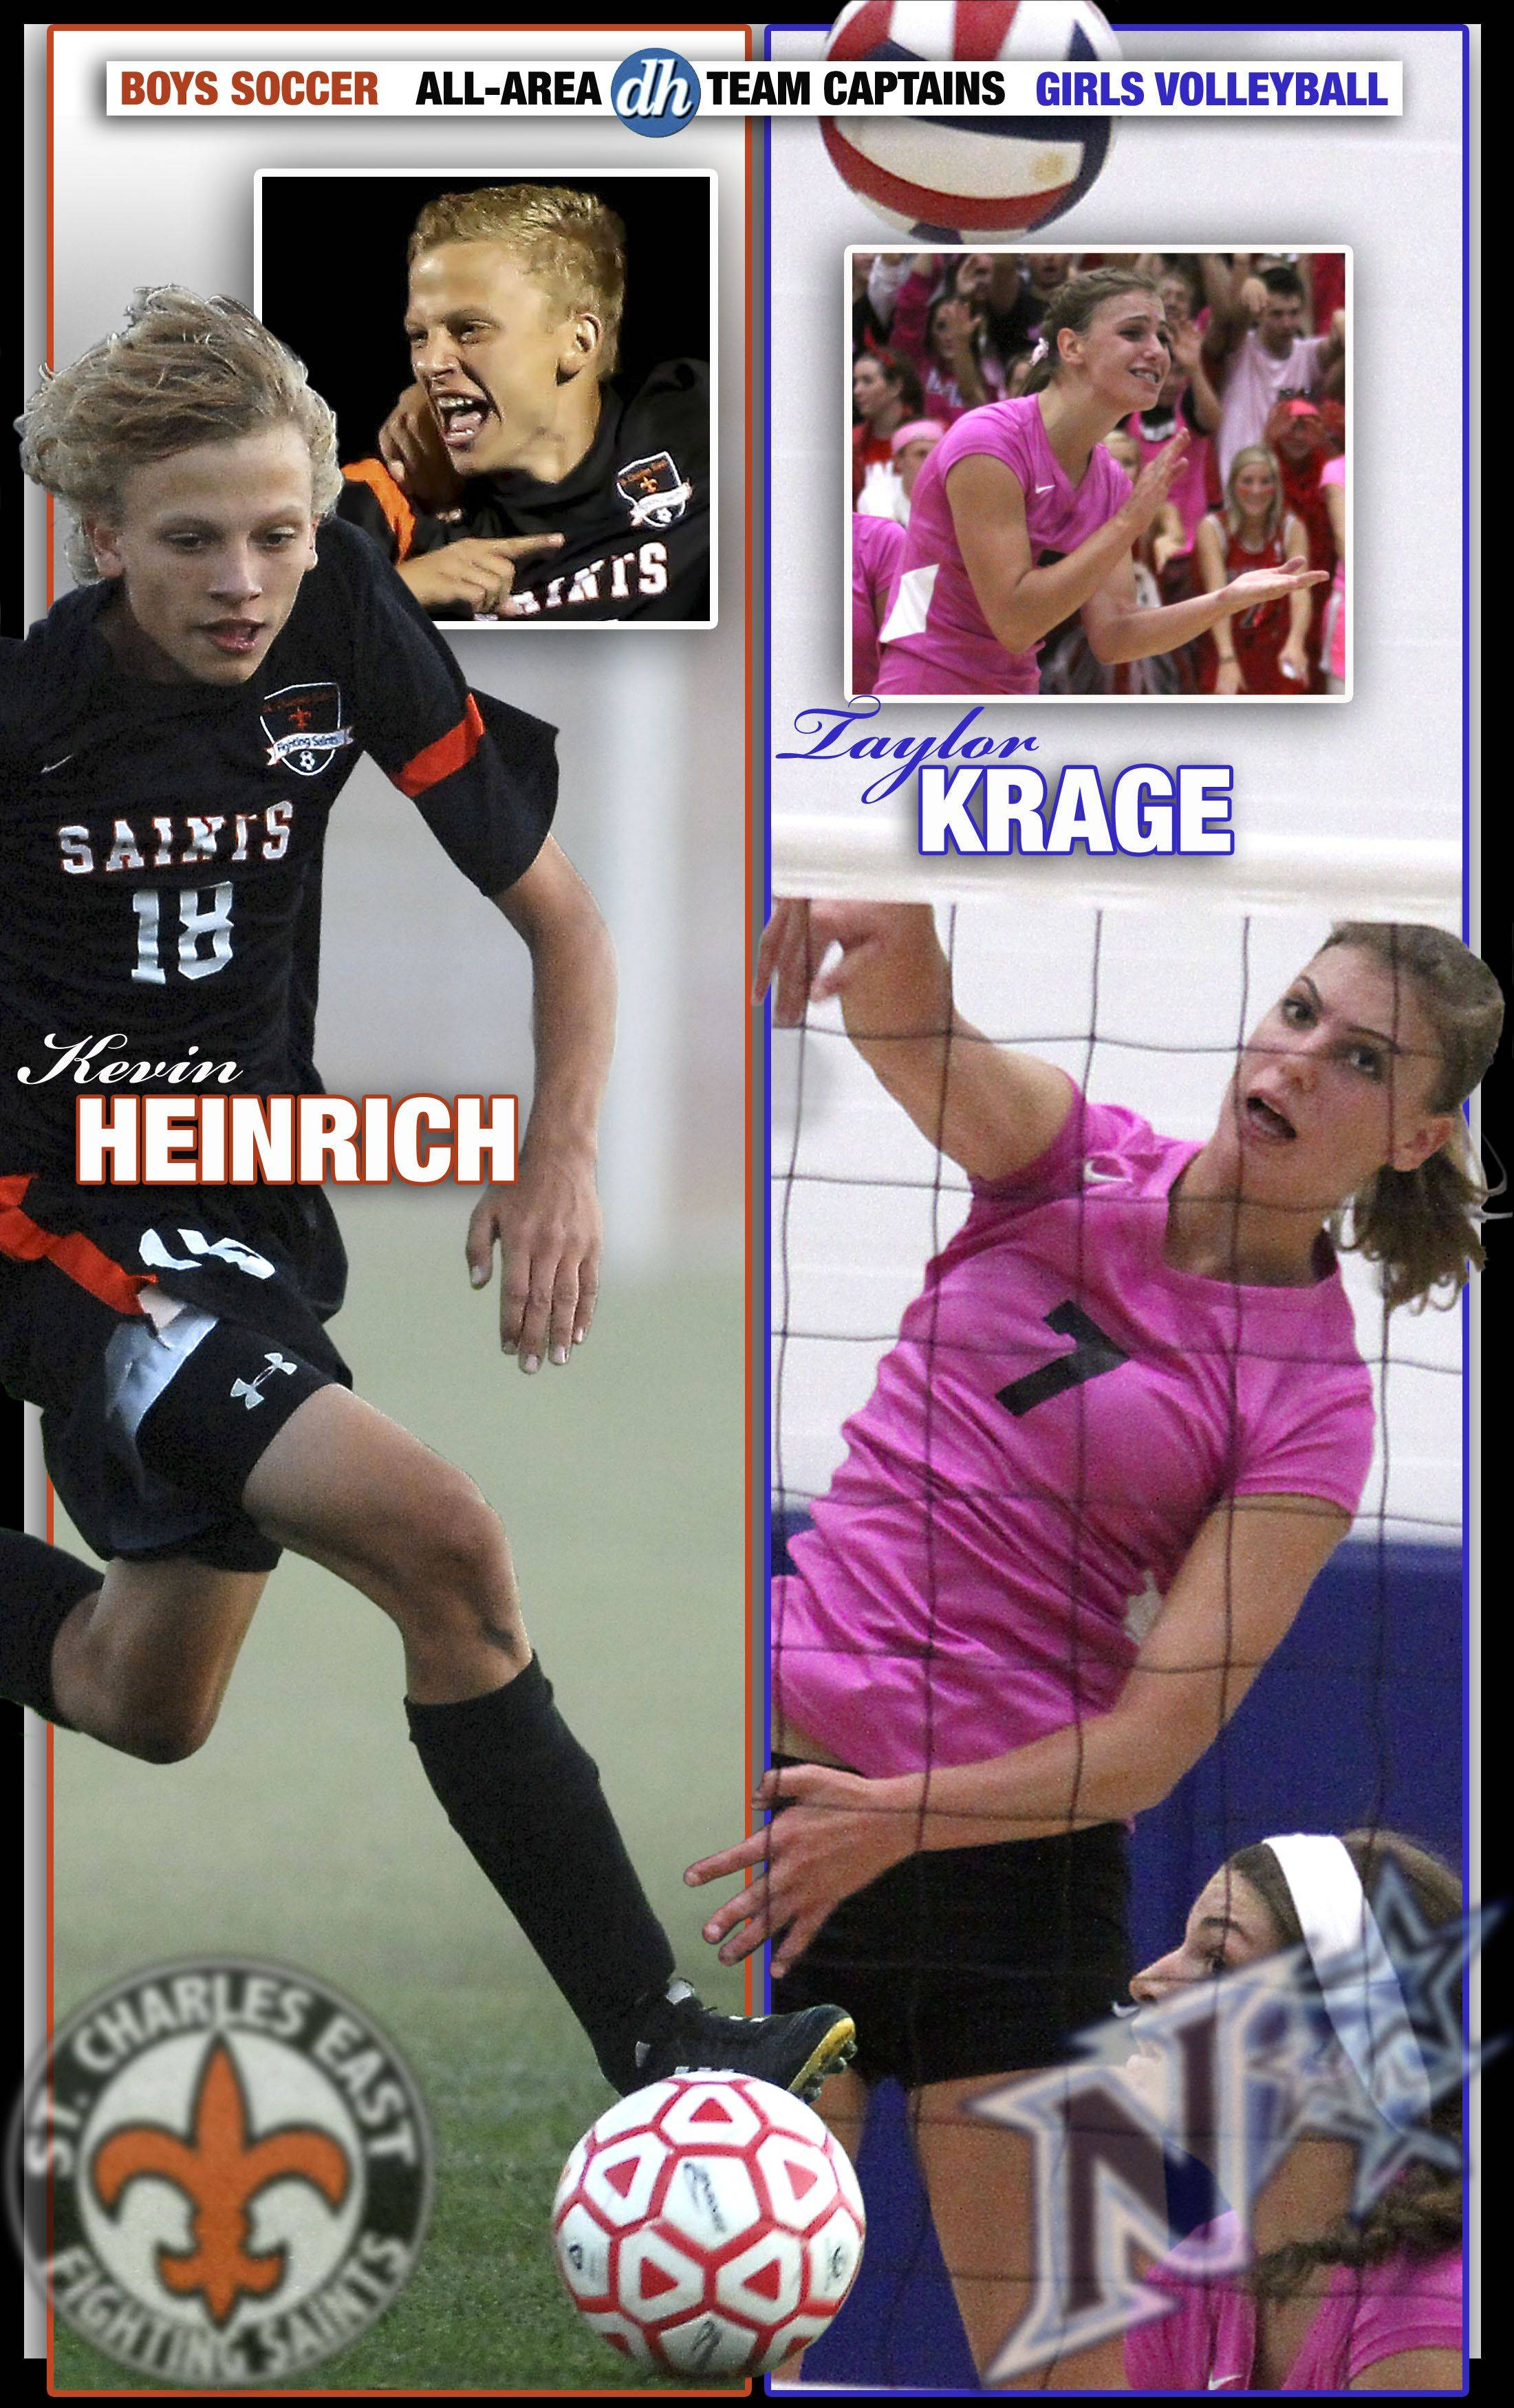 Boys soccer and Girls volleyball All-area Team Captains in the Tri-cities are Kevin Heinrich of St. Charles East and Taylor Krage of St. Charles North.